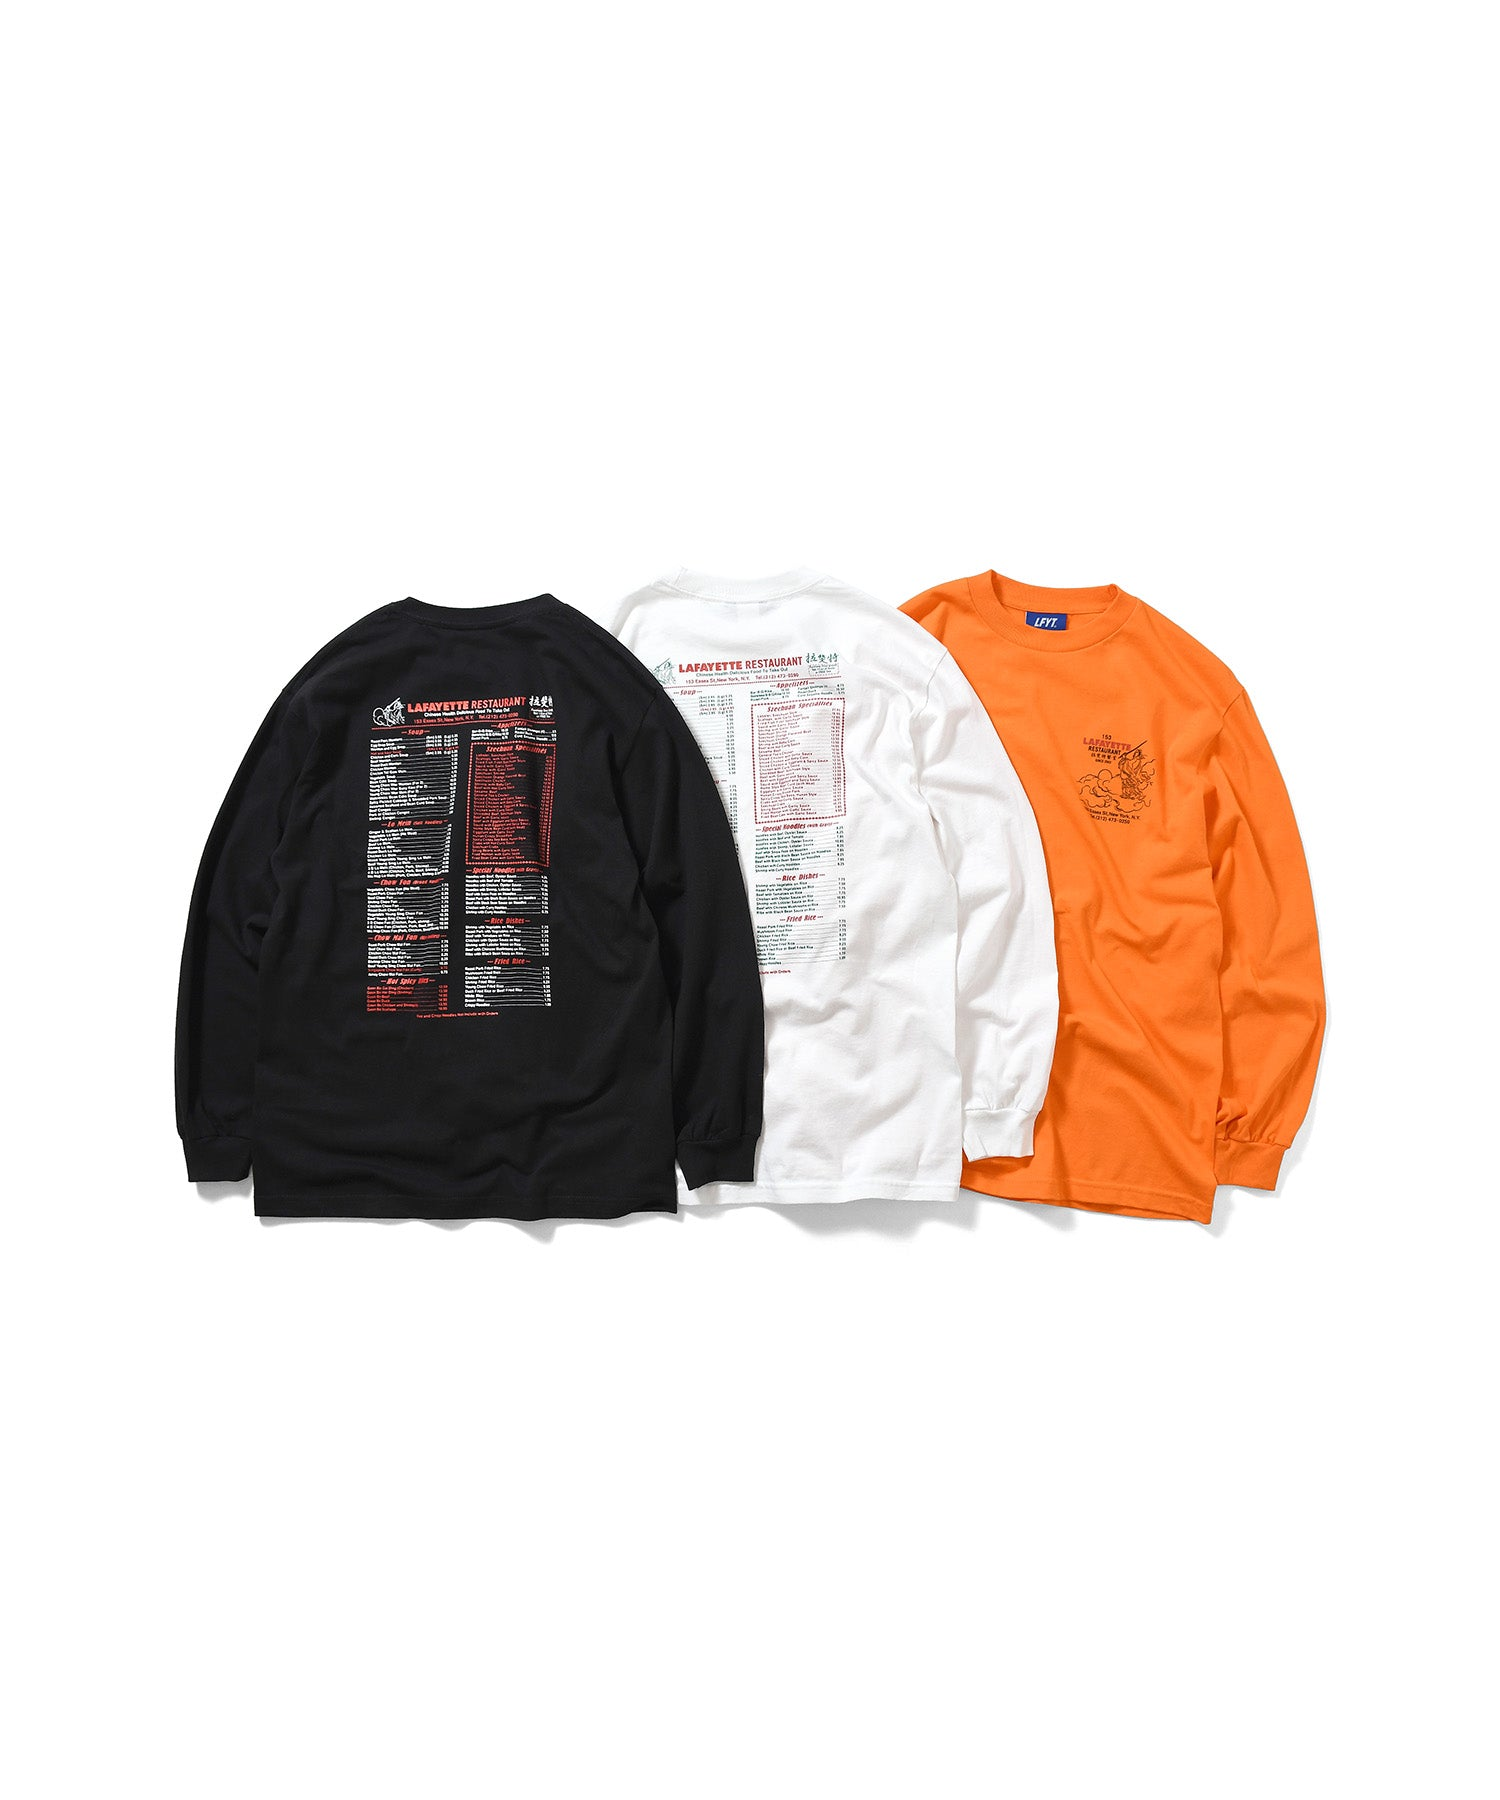 CHINA TOWN MENU L/S TEE ORANGE LA200117